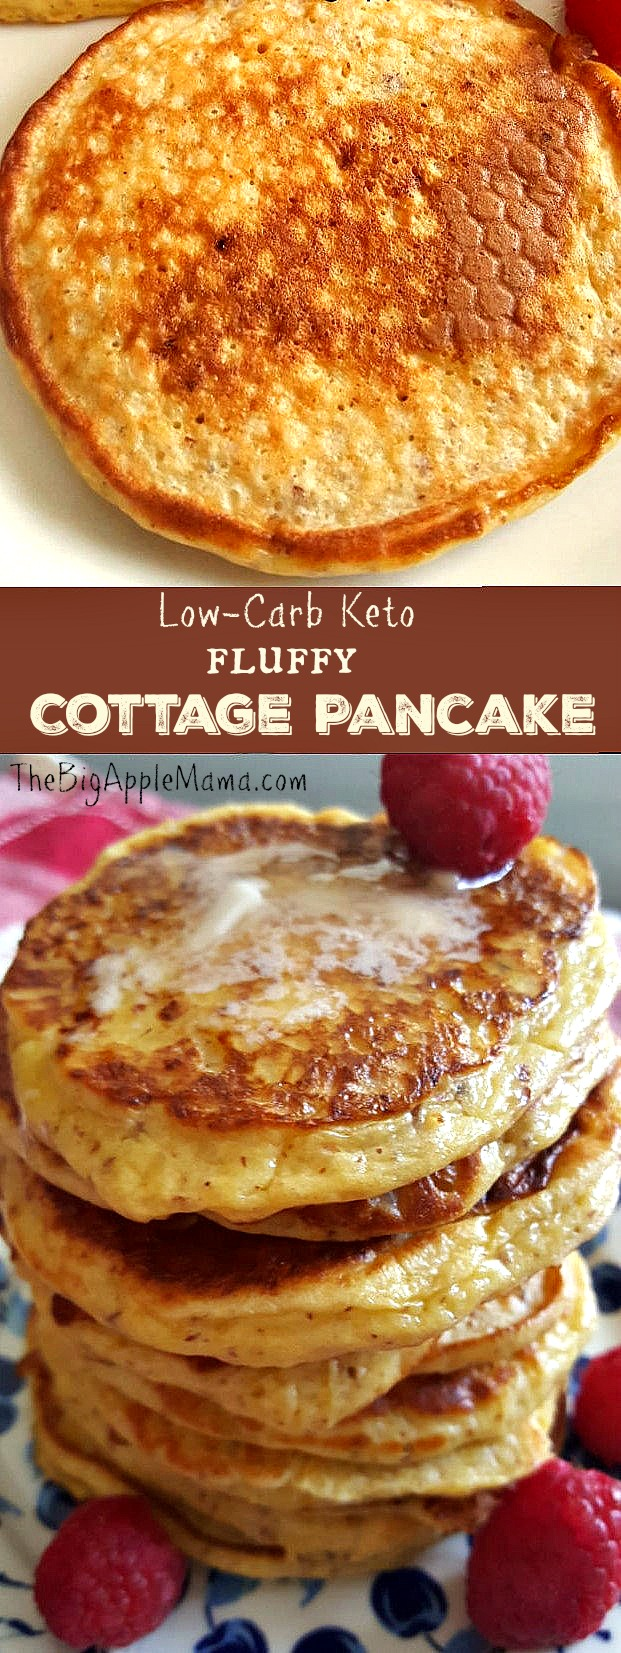 keto diet pancakes with cottage cheese